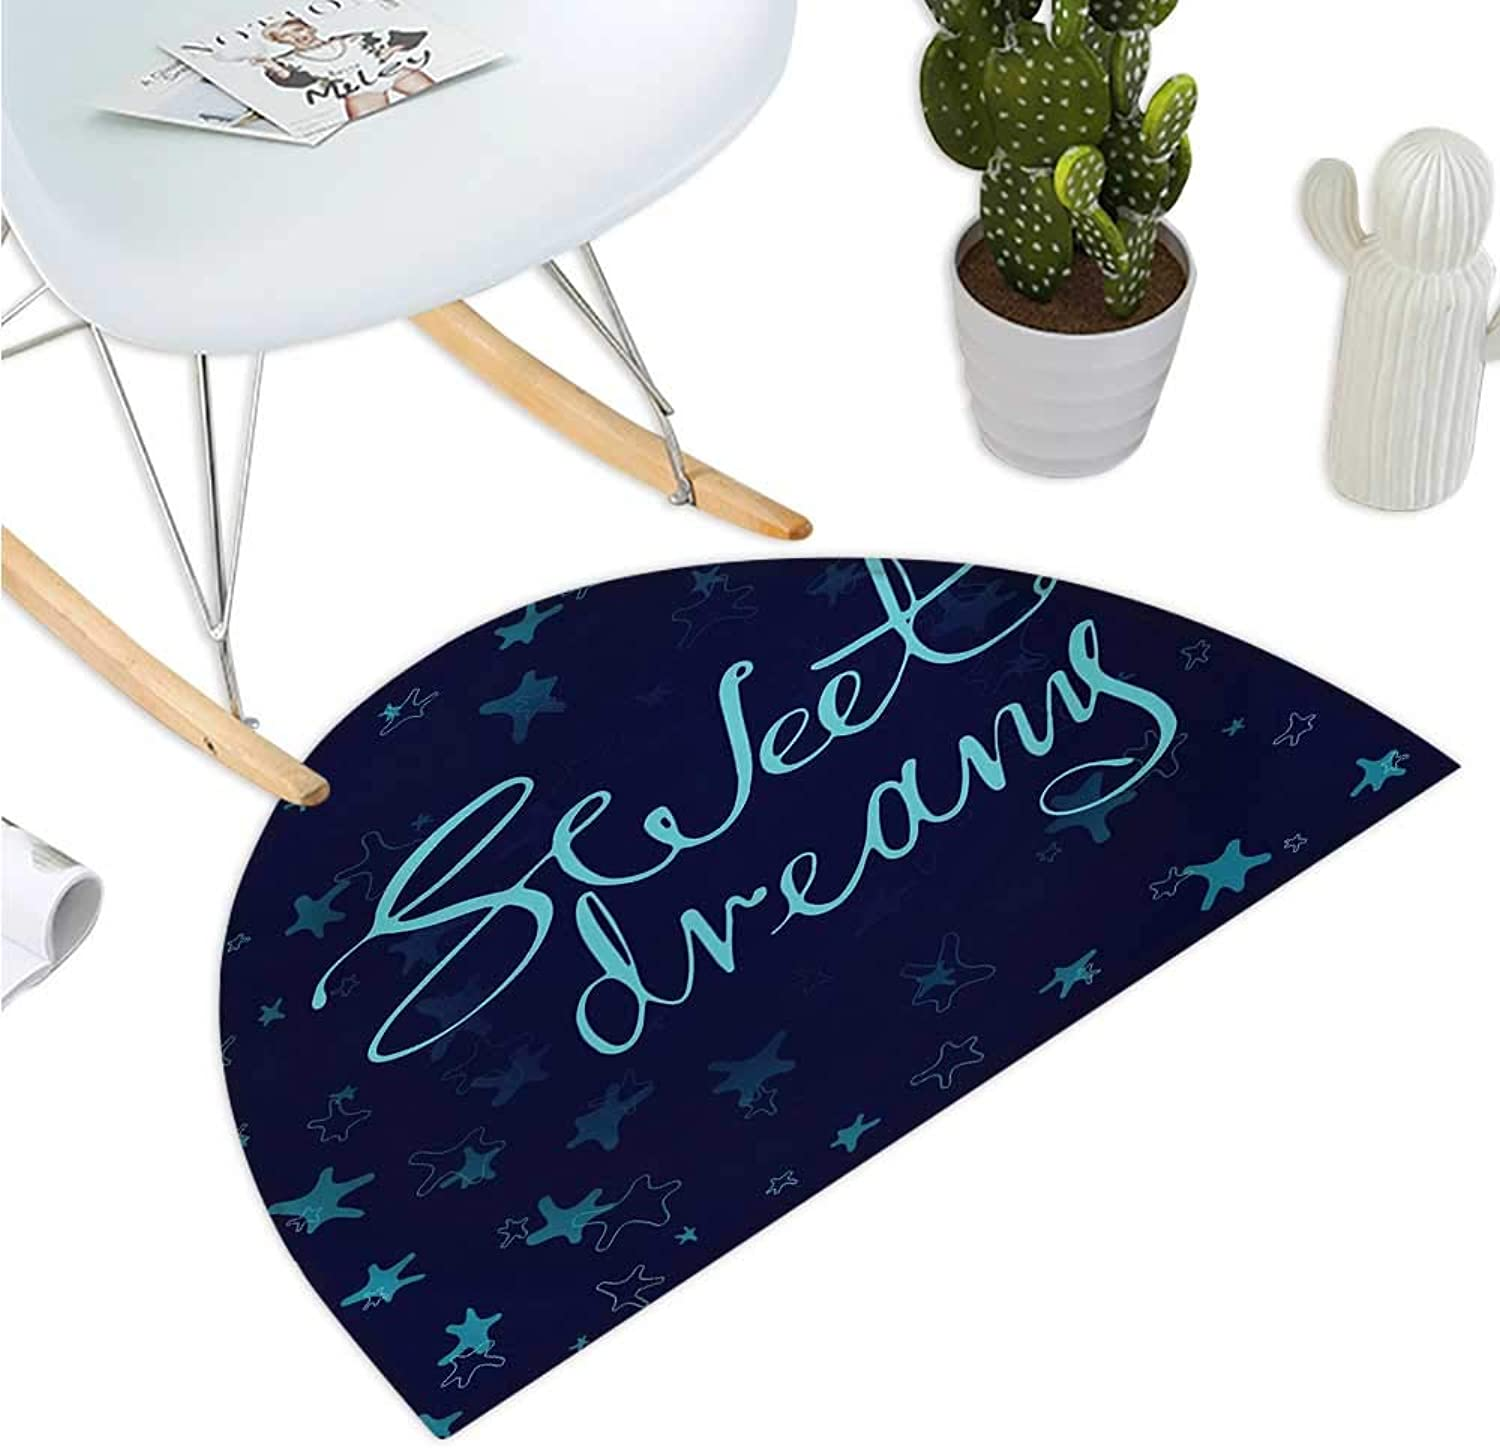 Sweet Dreams Half Round Door mats Phrase in Handwriting Style on Starry Background Modern Calligraphy Entry Door Mat H 51.1  xD 76.7  Aqua and Navy bluee